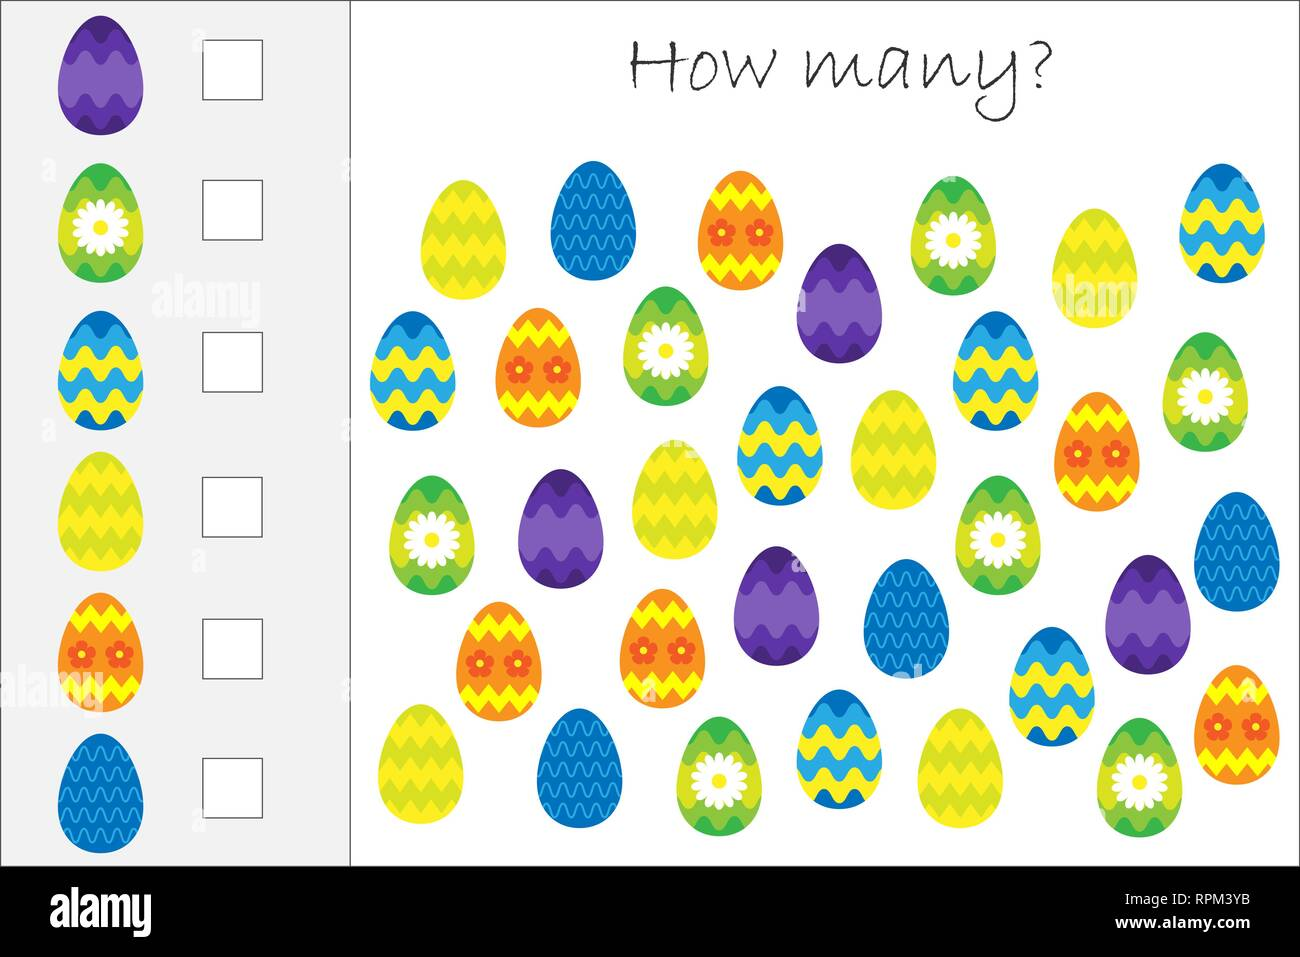 How Many Counting Game With Decoration Easter Eggs For